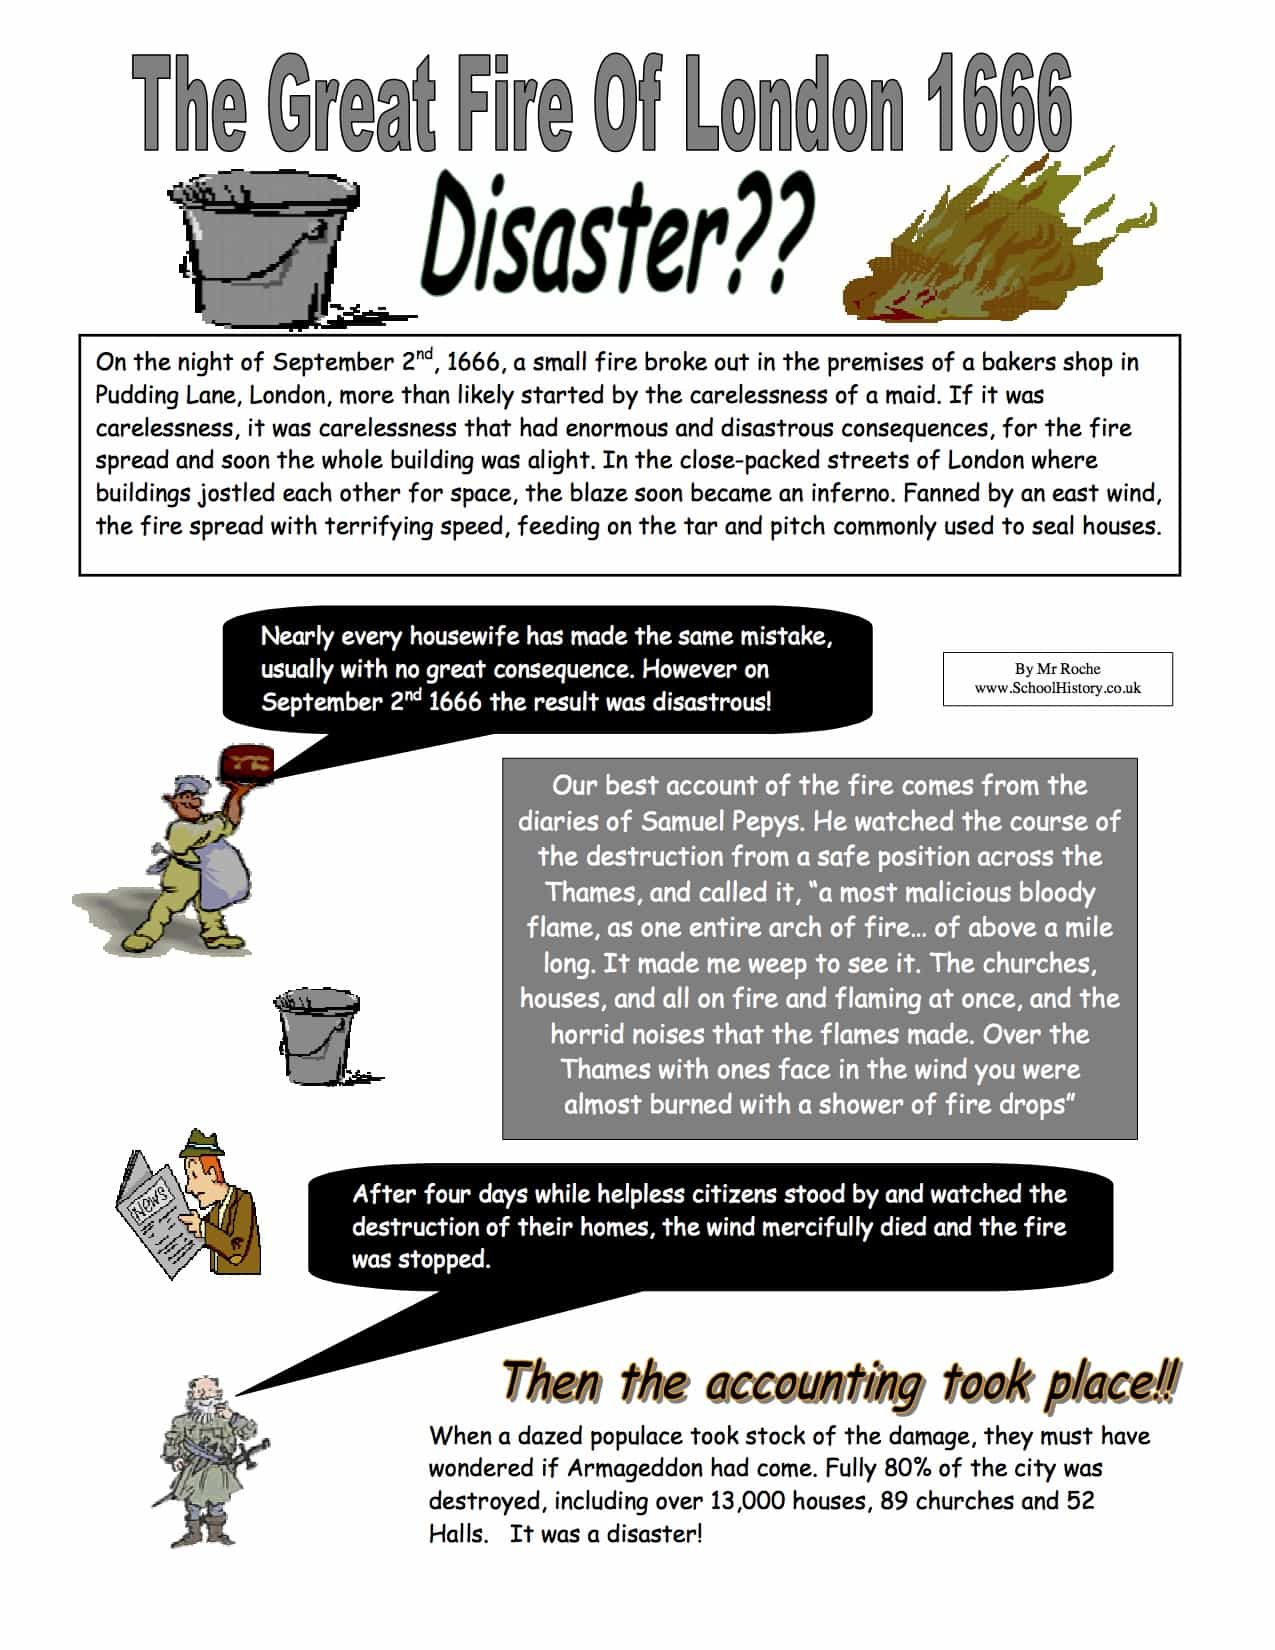 The Great Fire Of London Disaster Worksheet